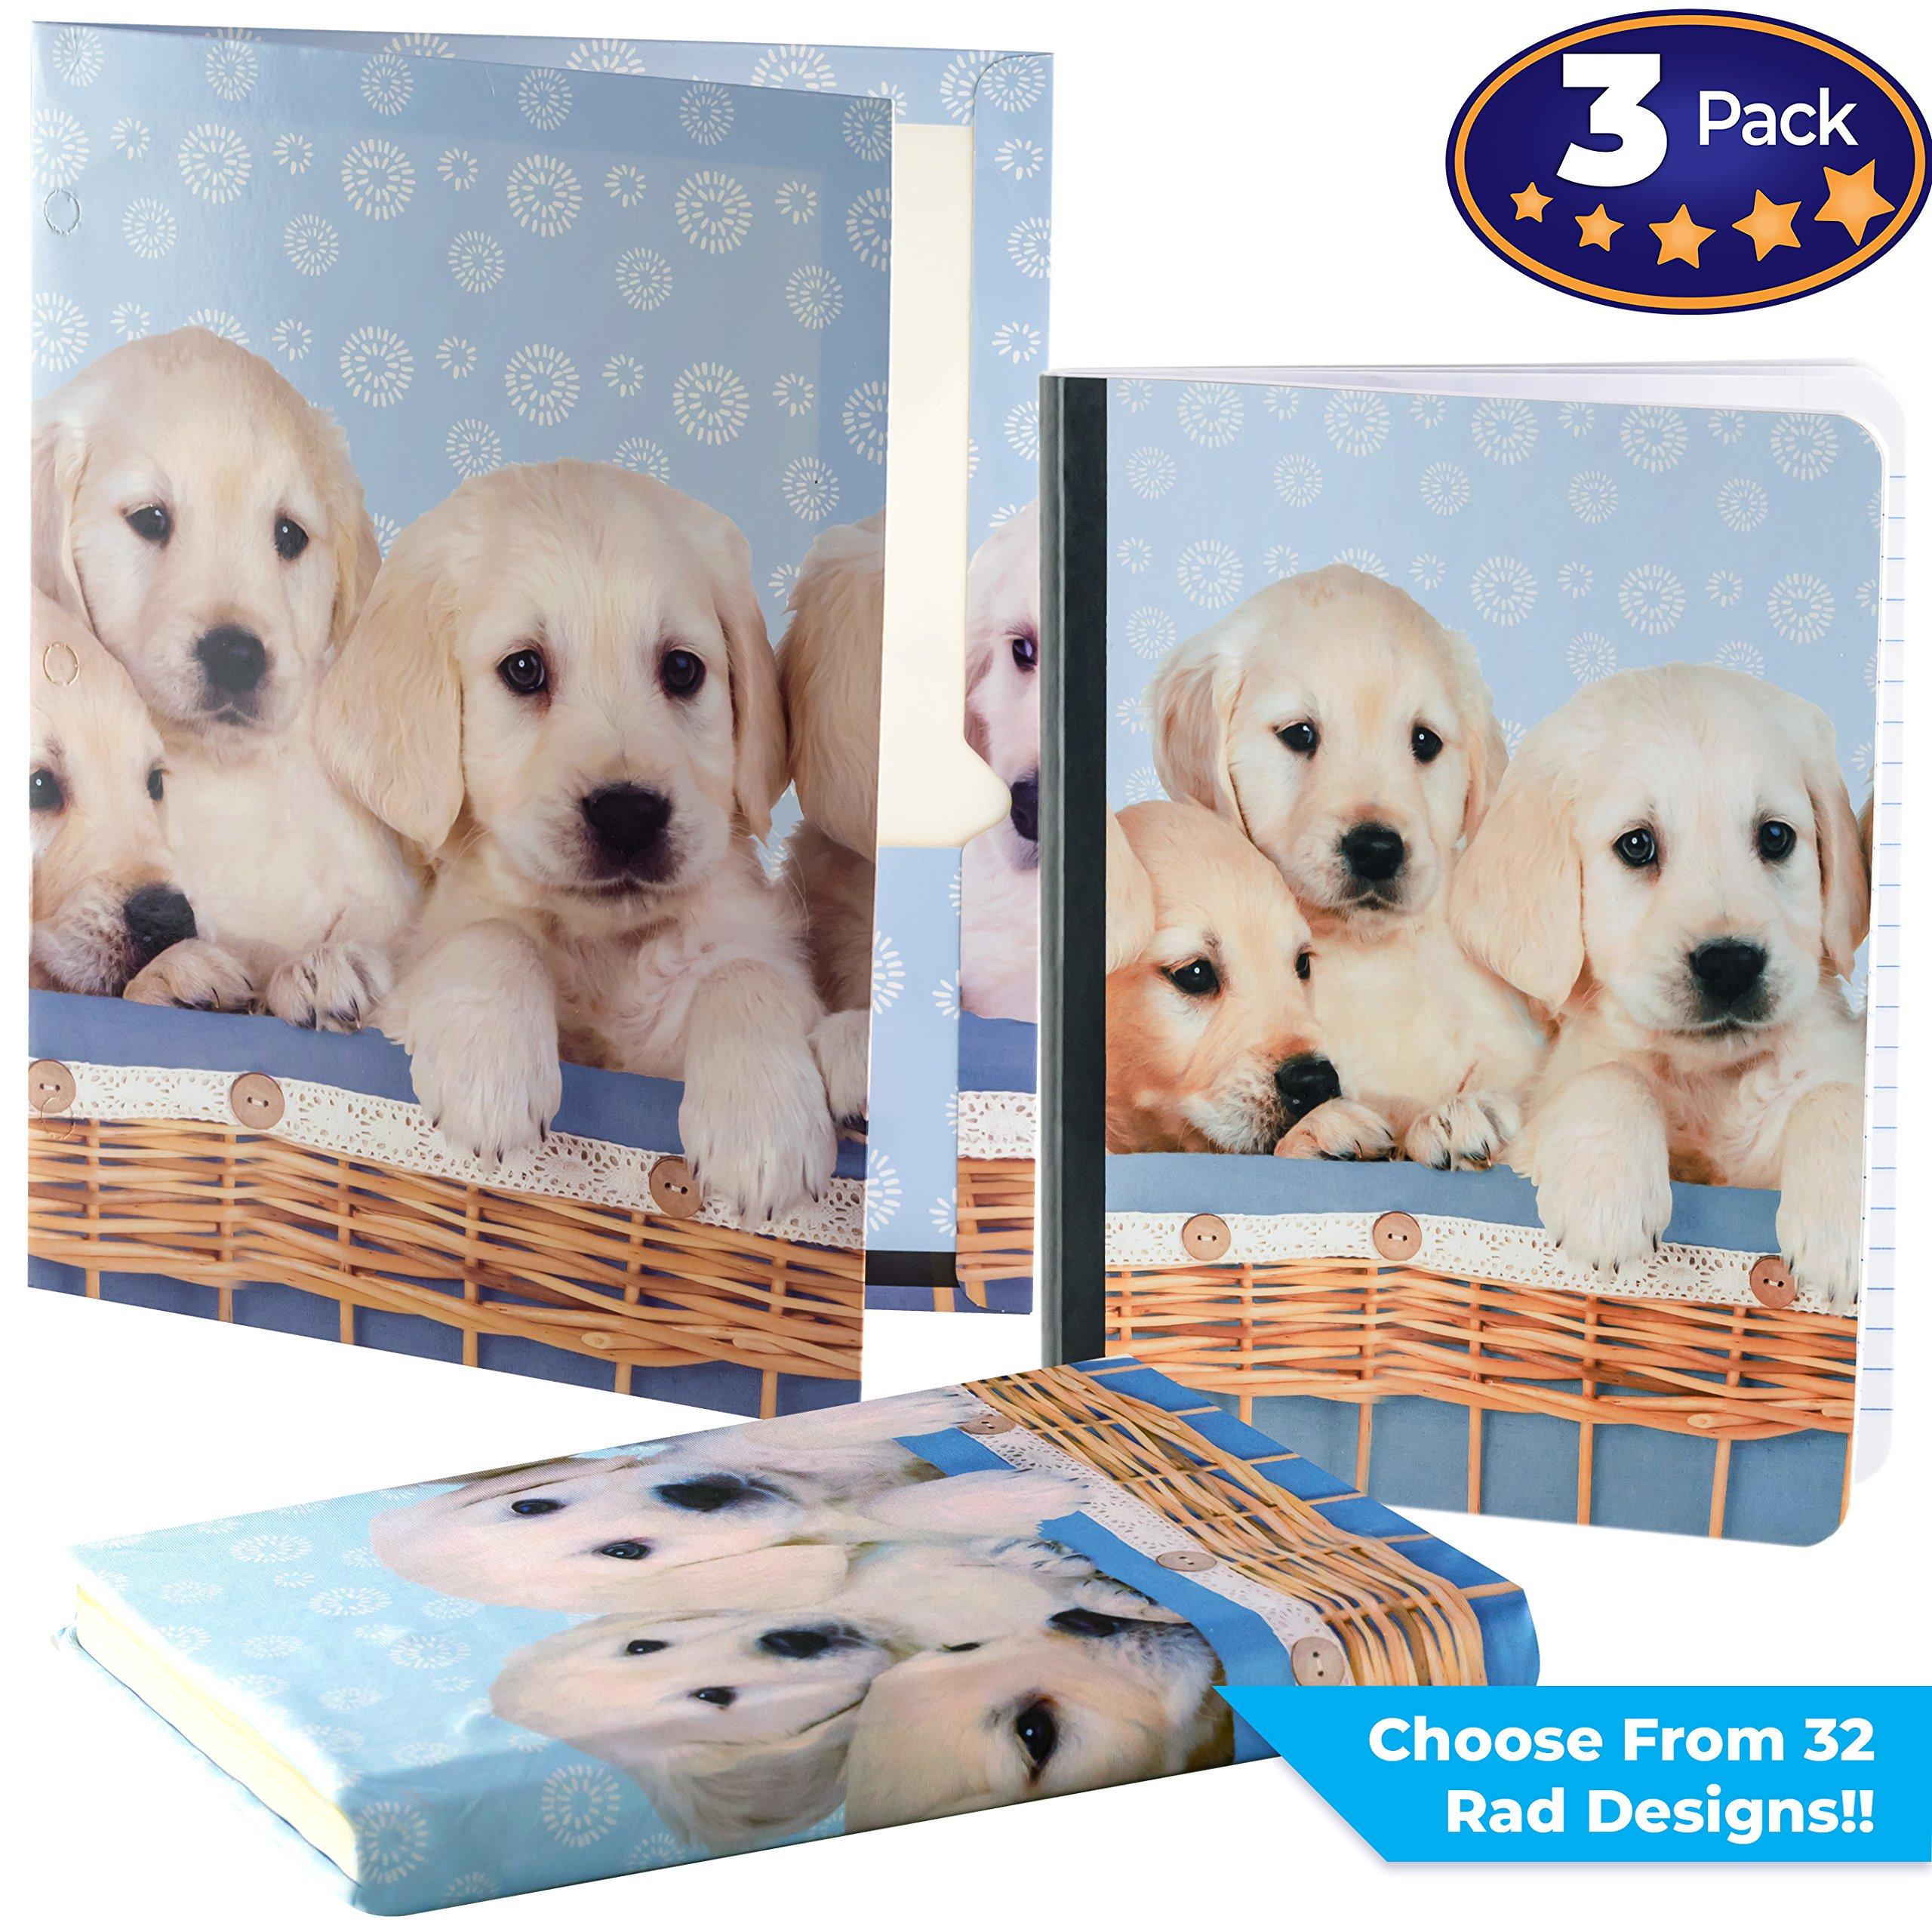 Matching Book Cover, Folder and Composition Notebook Pack. Our Set Of Stretchable Textbook Protector with a Durable Portfolio and Note Pad Is An Essential Supply to Keep Students Organized In School